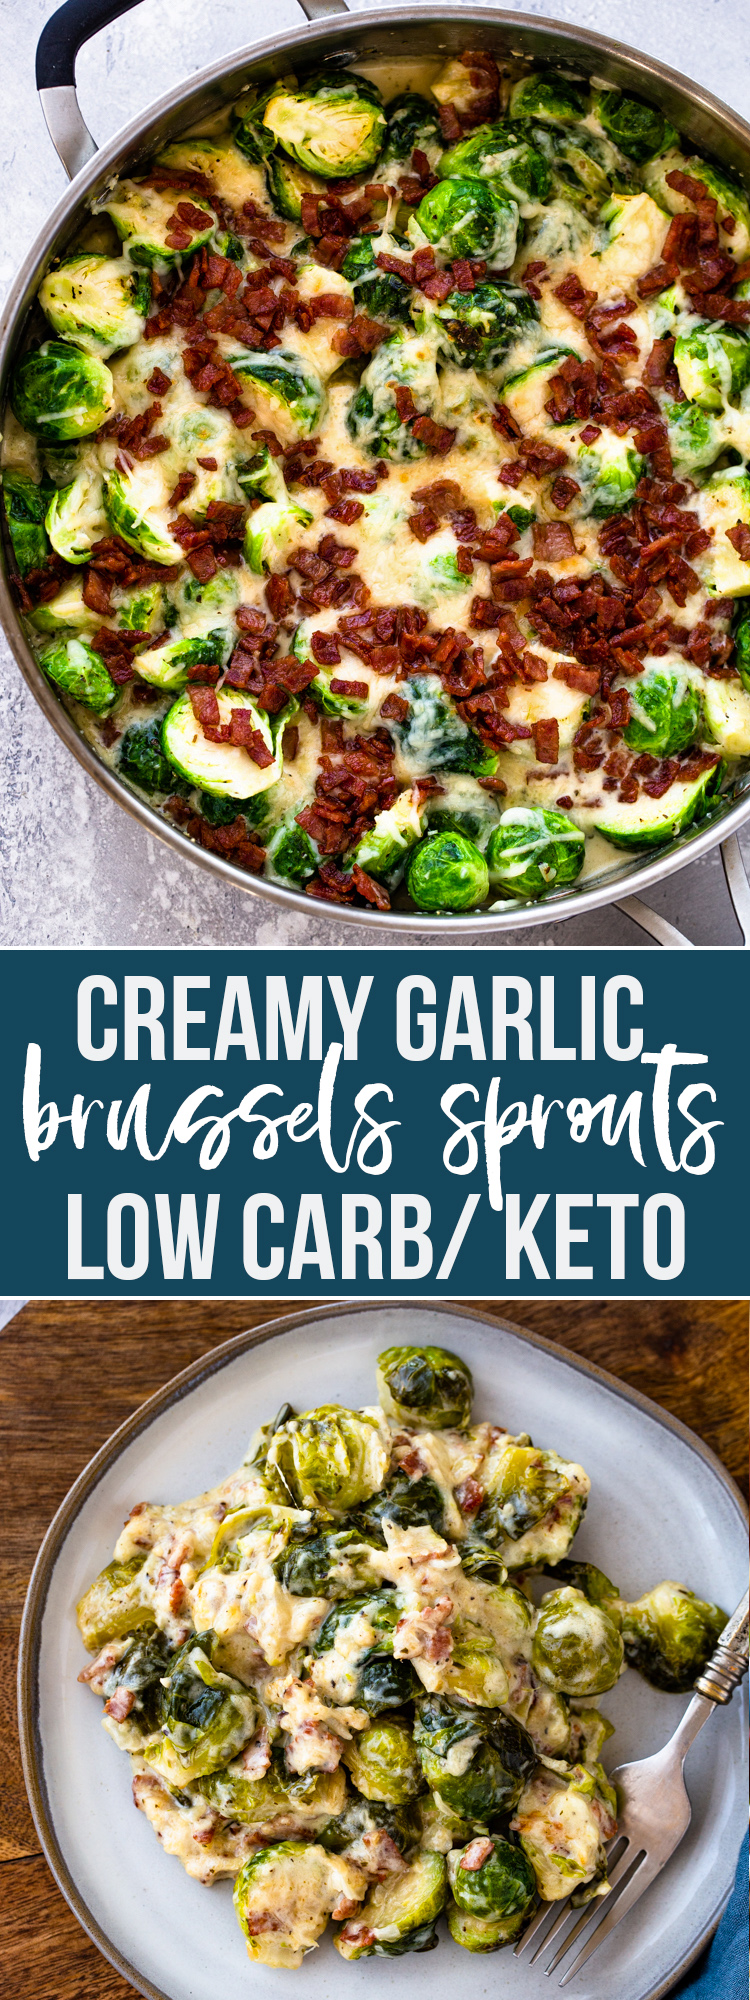 Creamy Garlic Parmesan Brussels Sprouts (Keto/Low Carb)